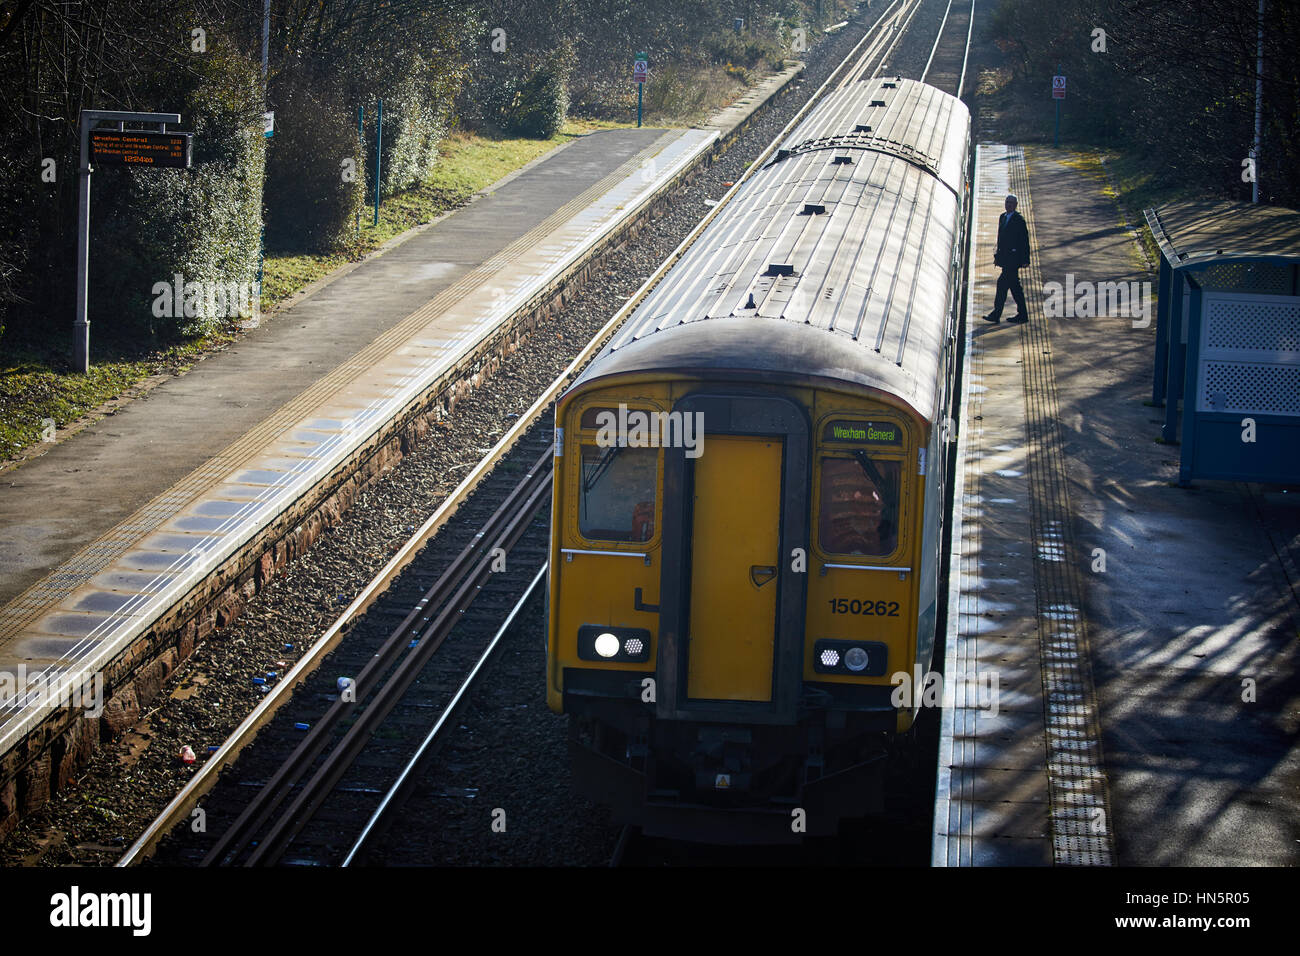 Arriva 156 DMU sprinter unit from Wales via Chester at Upton railway station to Birkenhead in Wallasey, Merseyside, - Stock Image